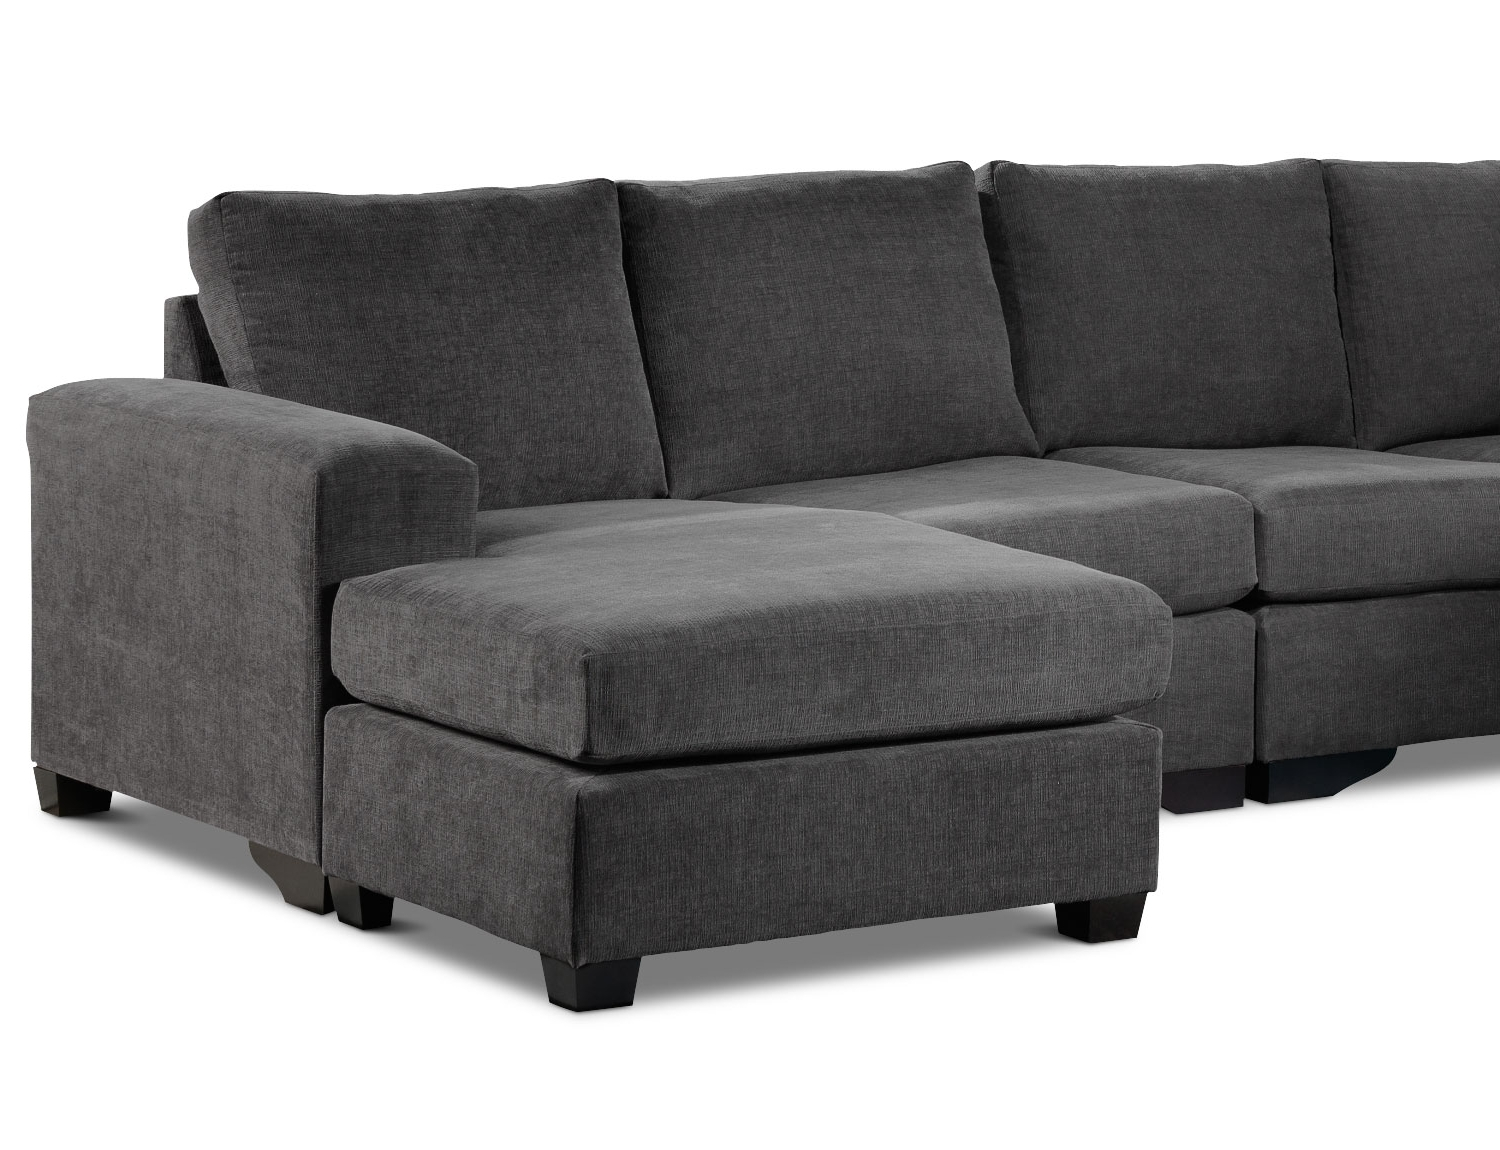 Danielle 3 Piece Sectional With Right Facing Corner Wedge – Grey Inside Well Known Mobilia Sectional Sofas (Gallery 12 of 20)